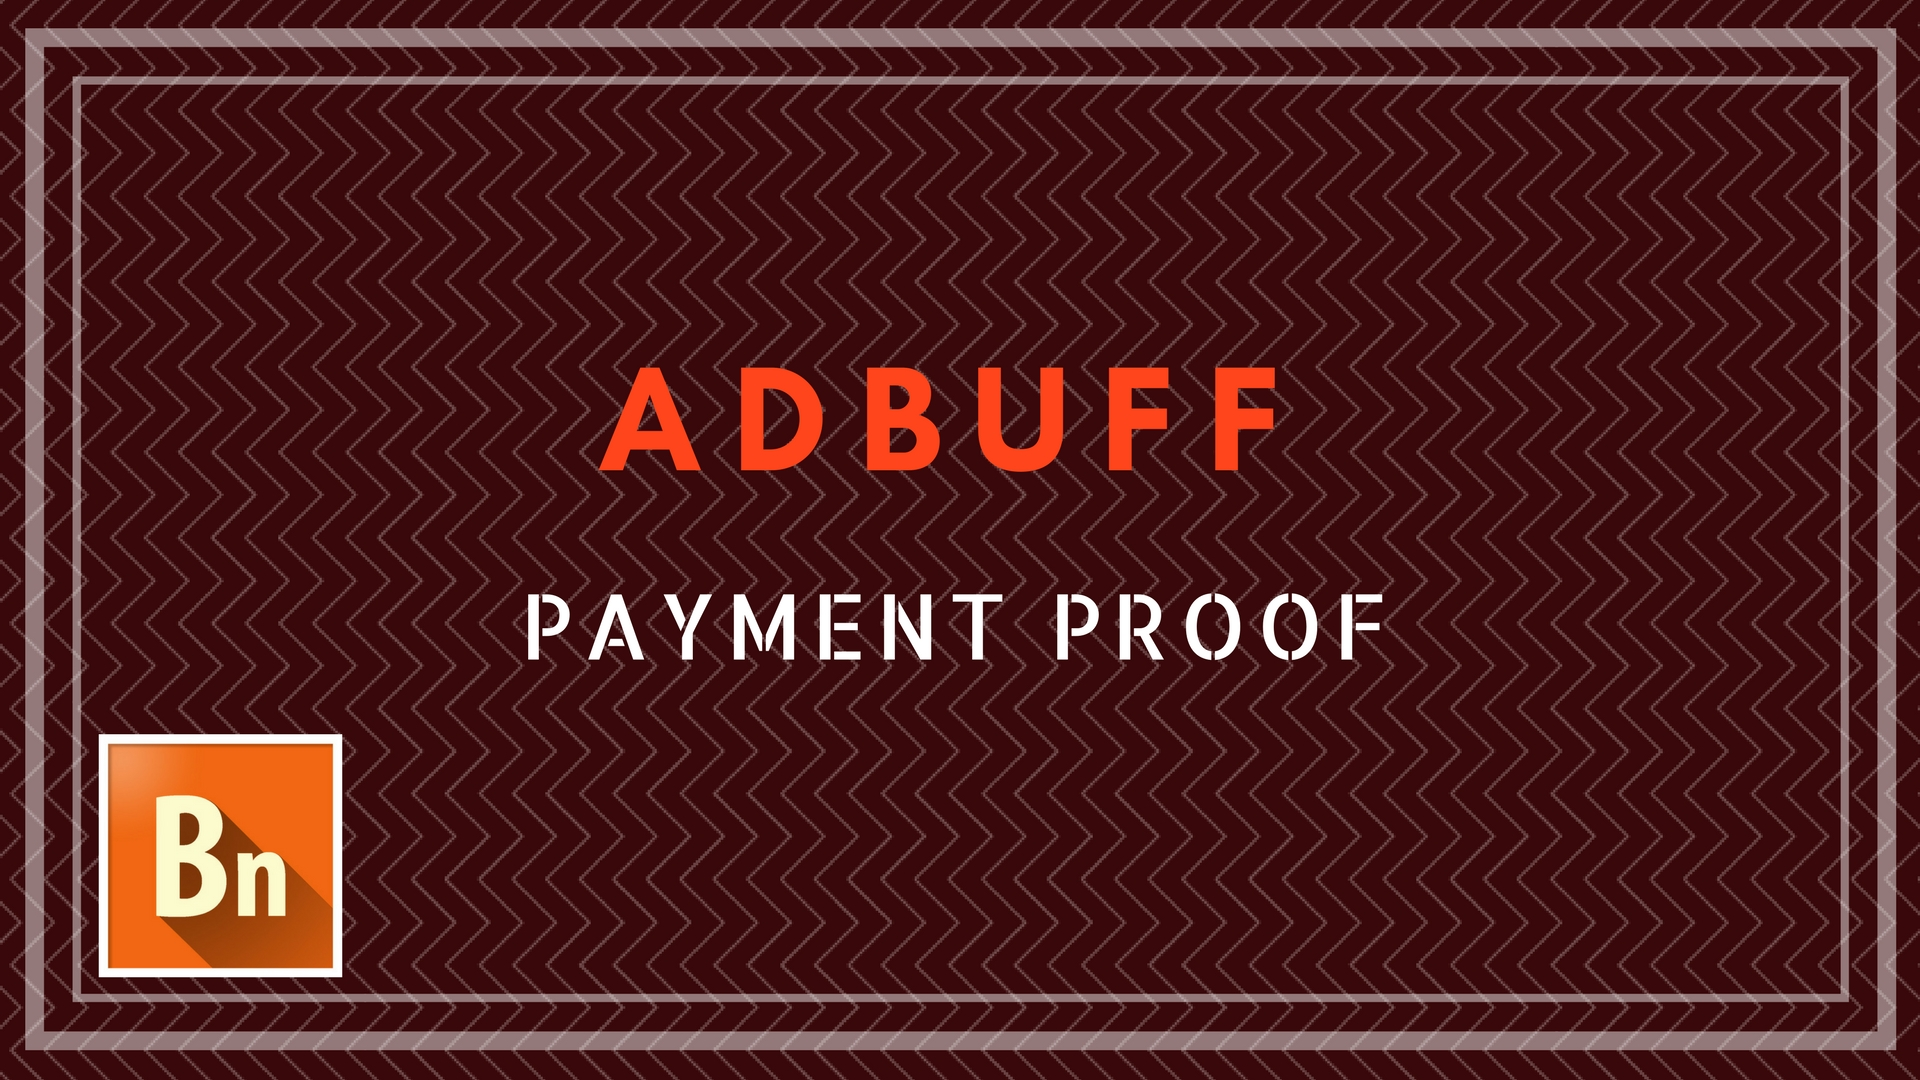 Adbuff Payment Proof for Publishers 2019